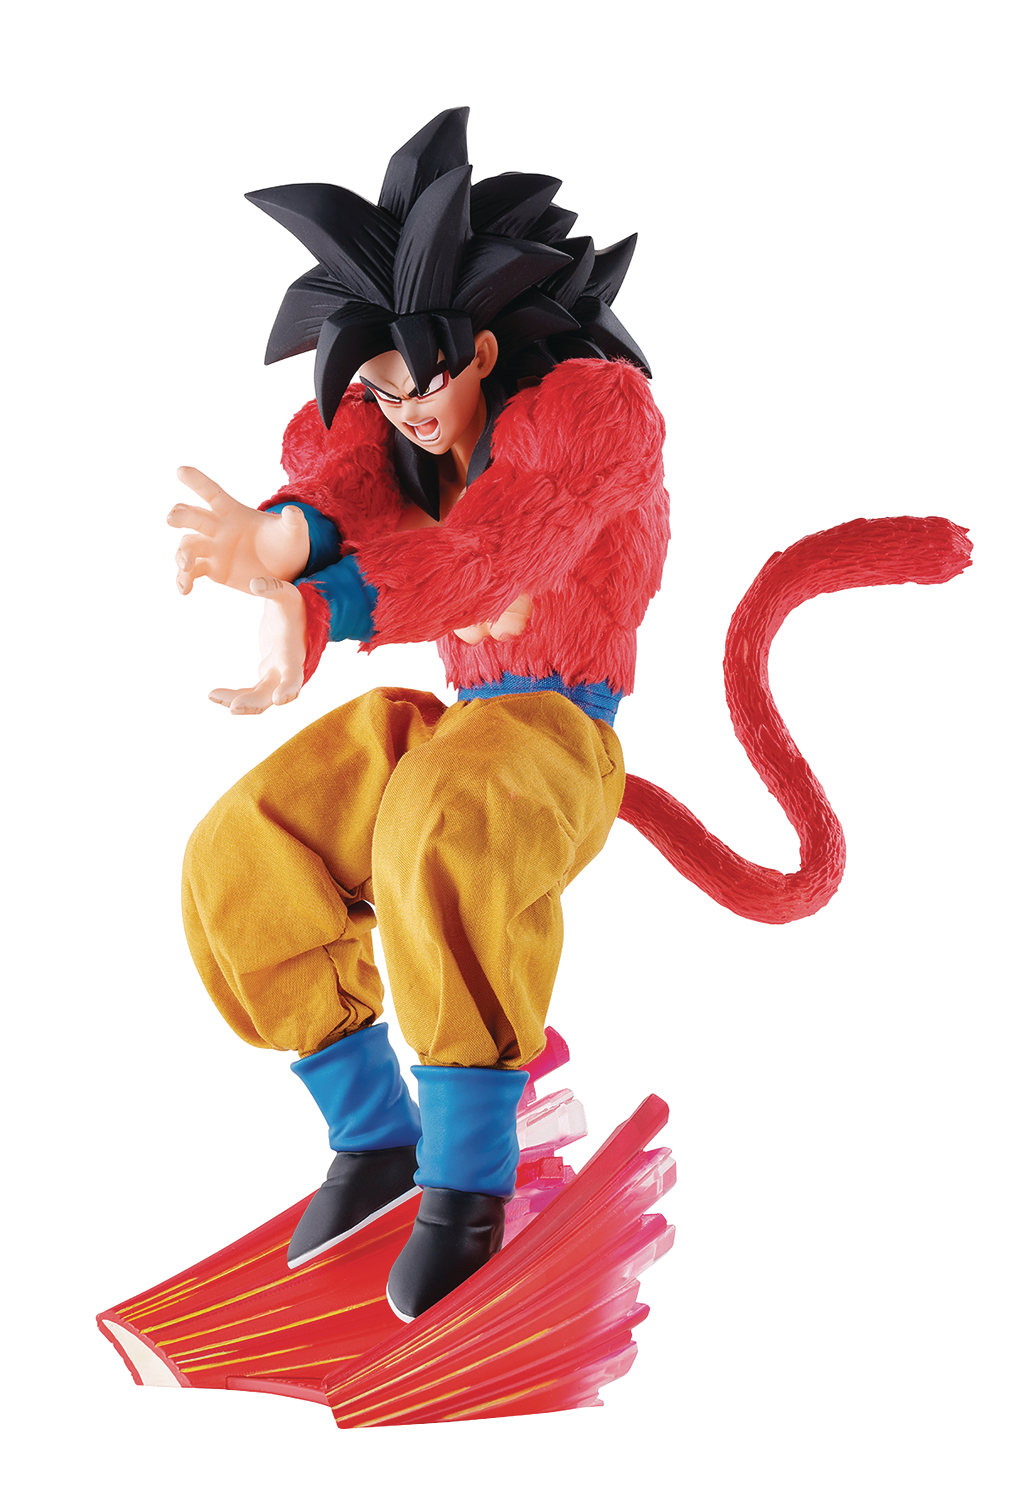 DIMENSION OF DRAGONBALL DBZ SUPER SAIYAN 4 GOKU PVC FIG